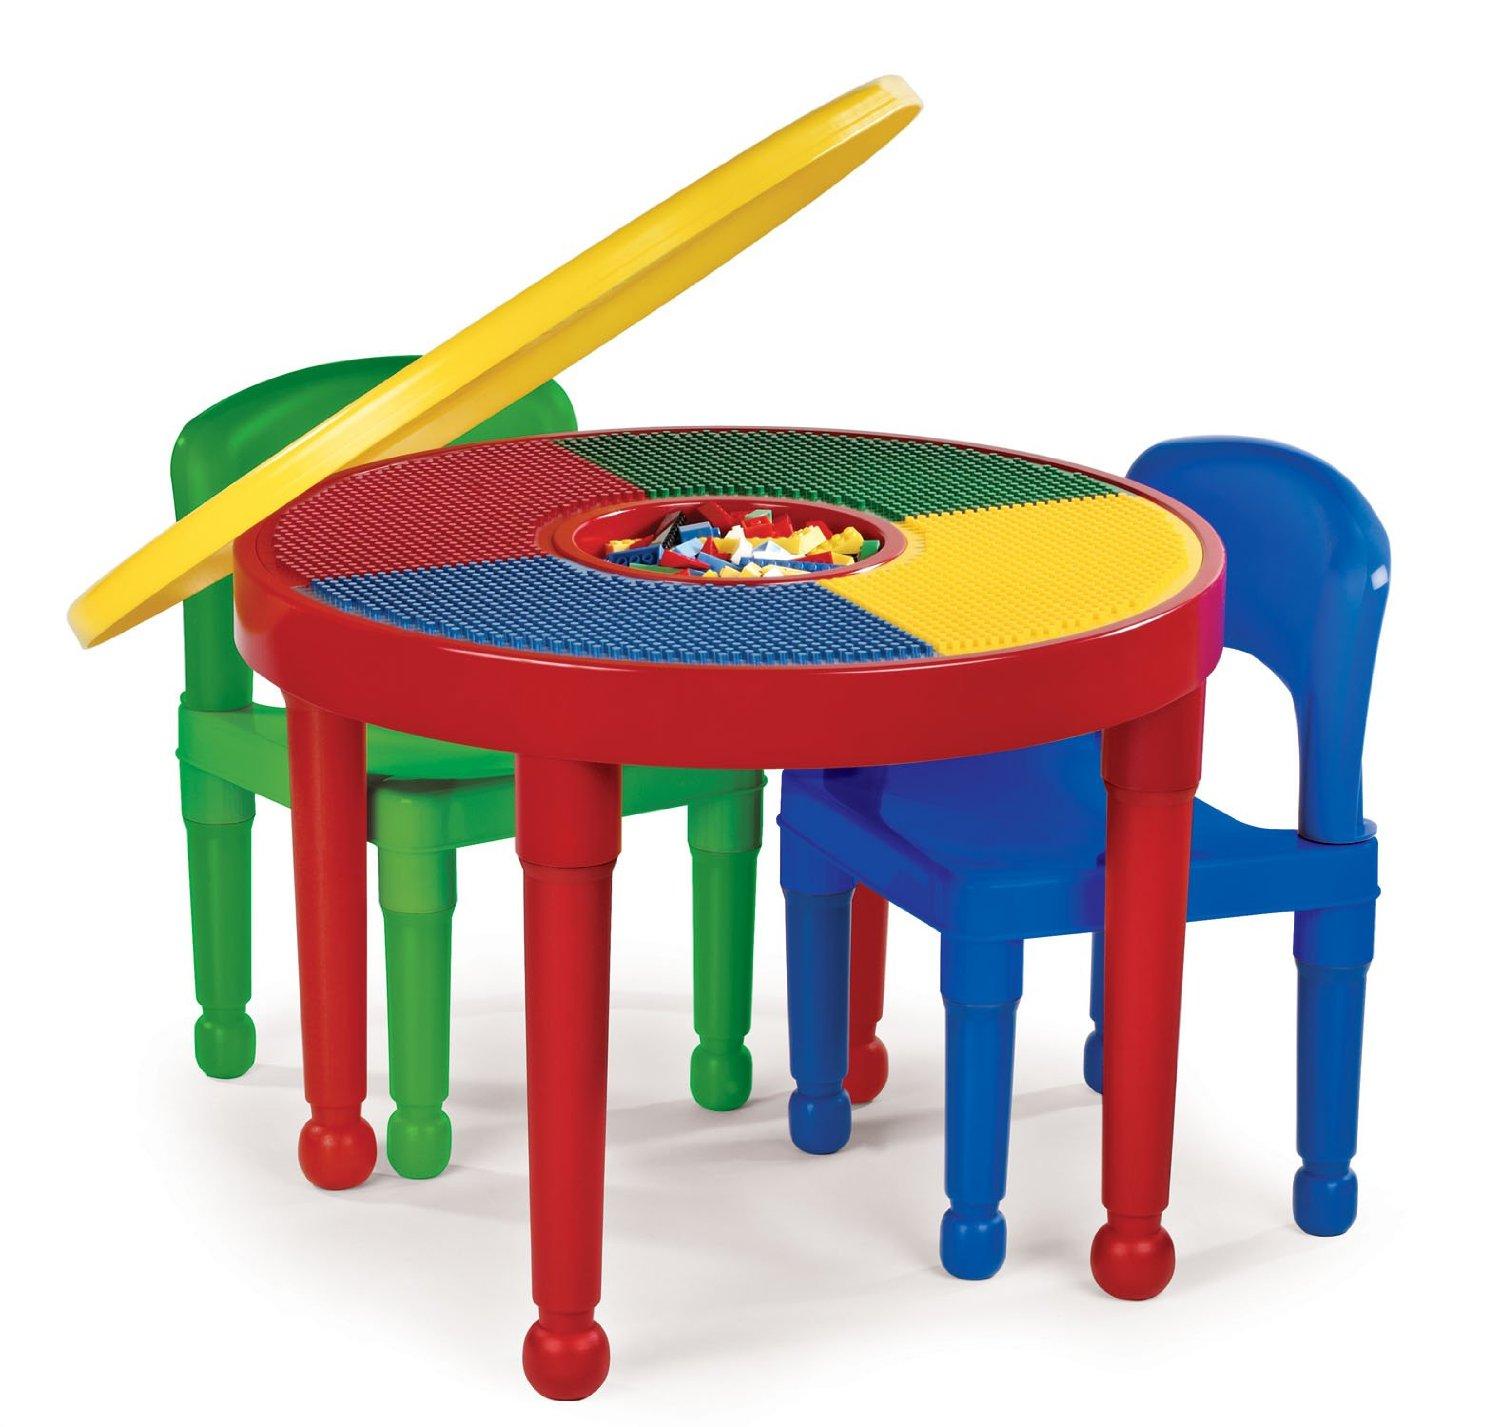 Total fab children 39 s plastic table and chair sets for Craft tables for kids